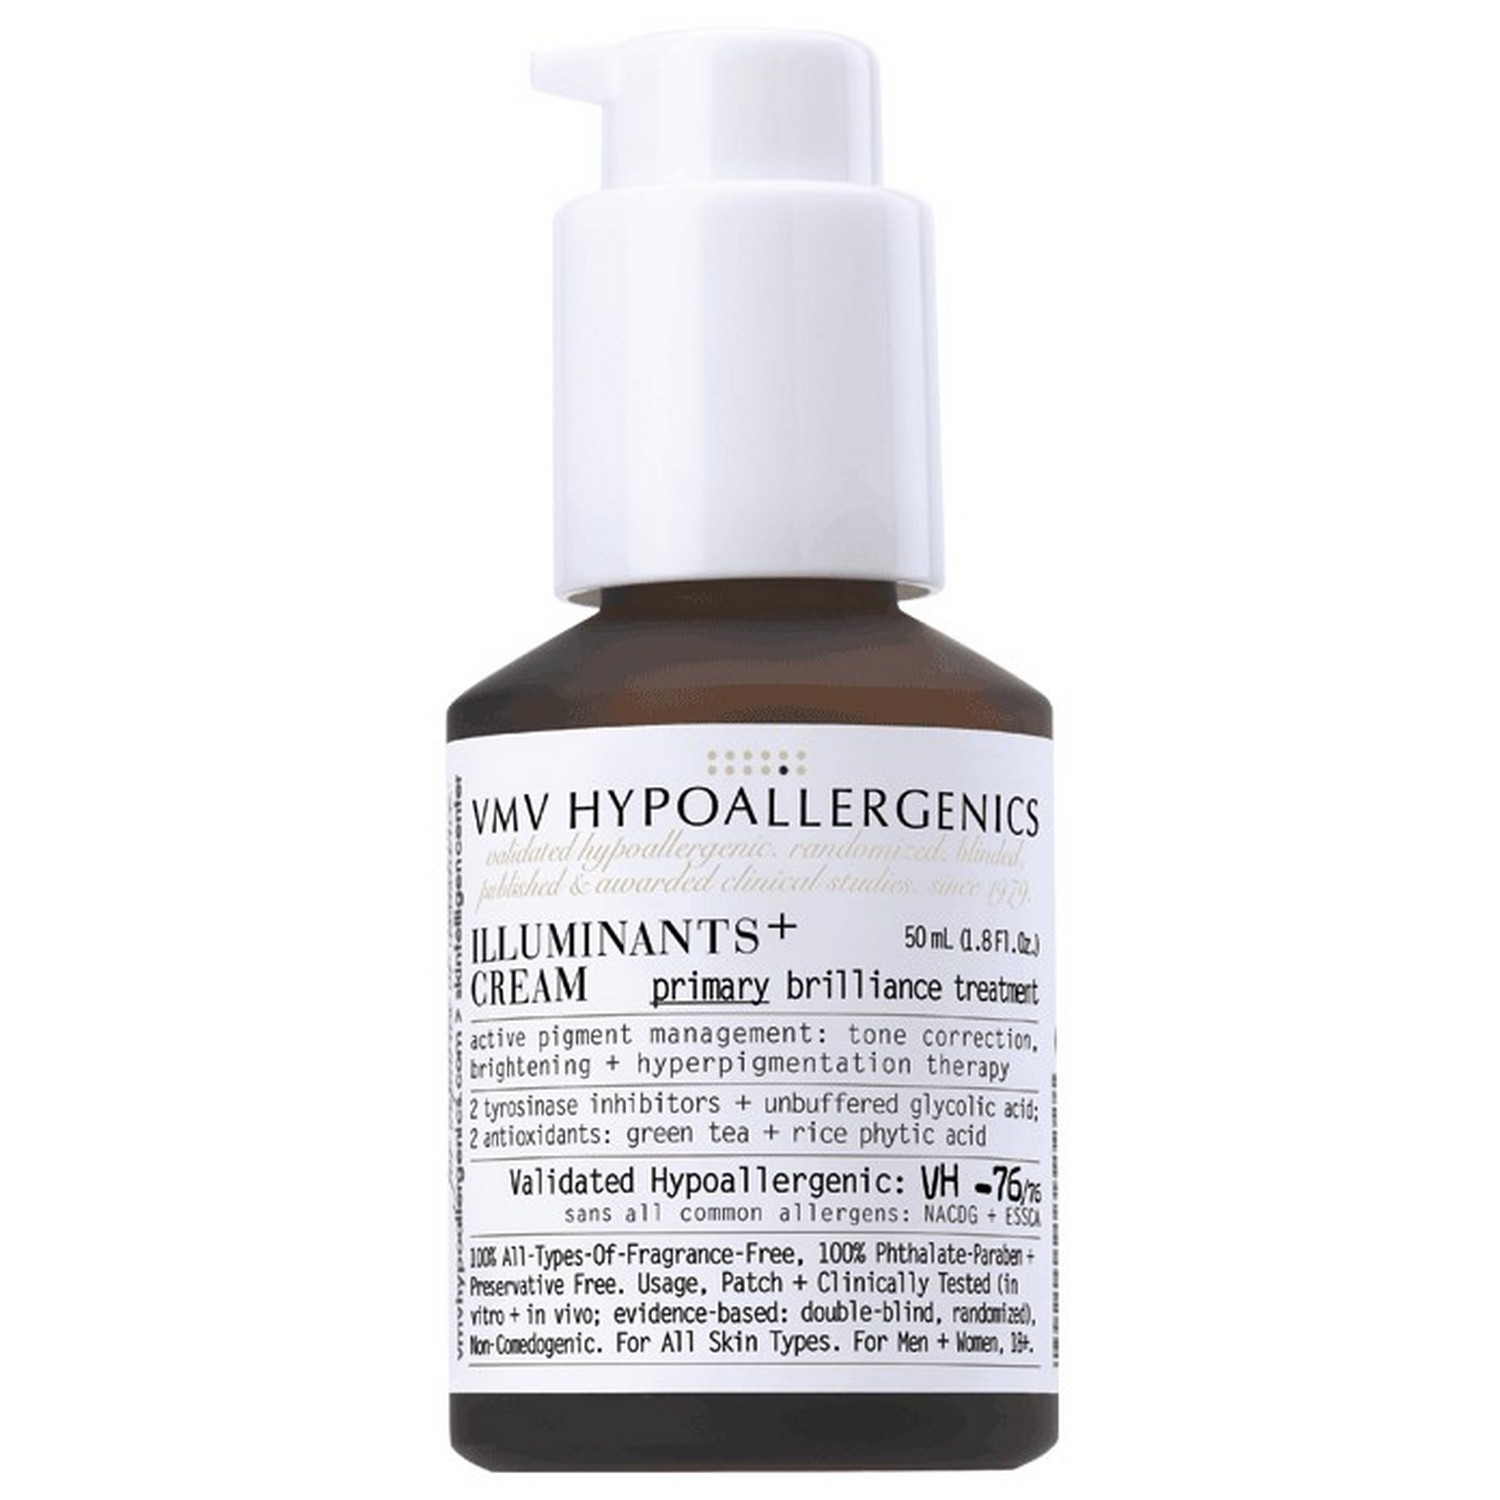 VMV Hypoallergenics ILLUMINANTS+ CREAM (50 ml / 1.8 fl oz)